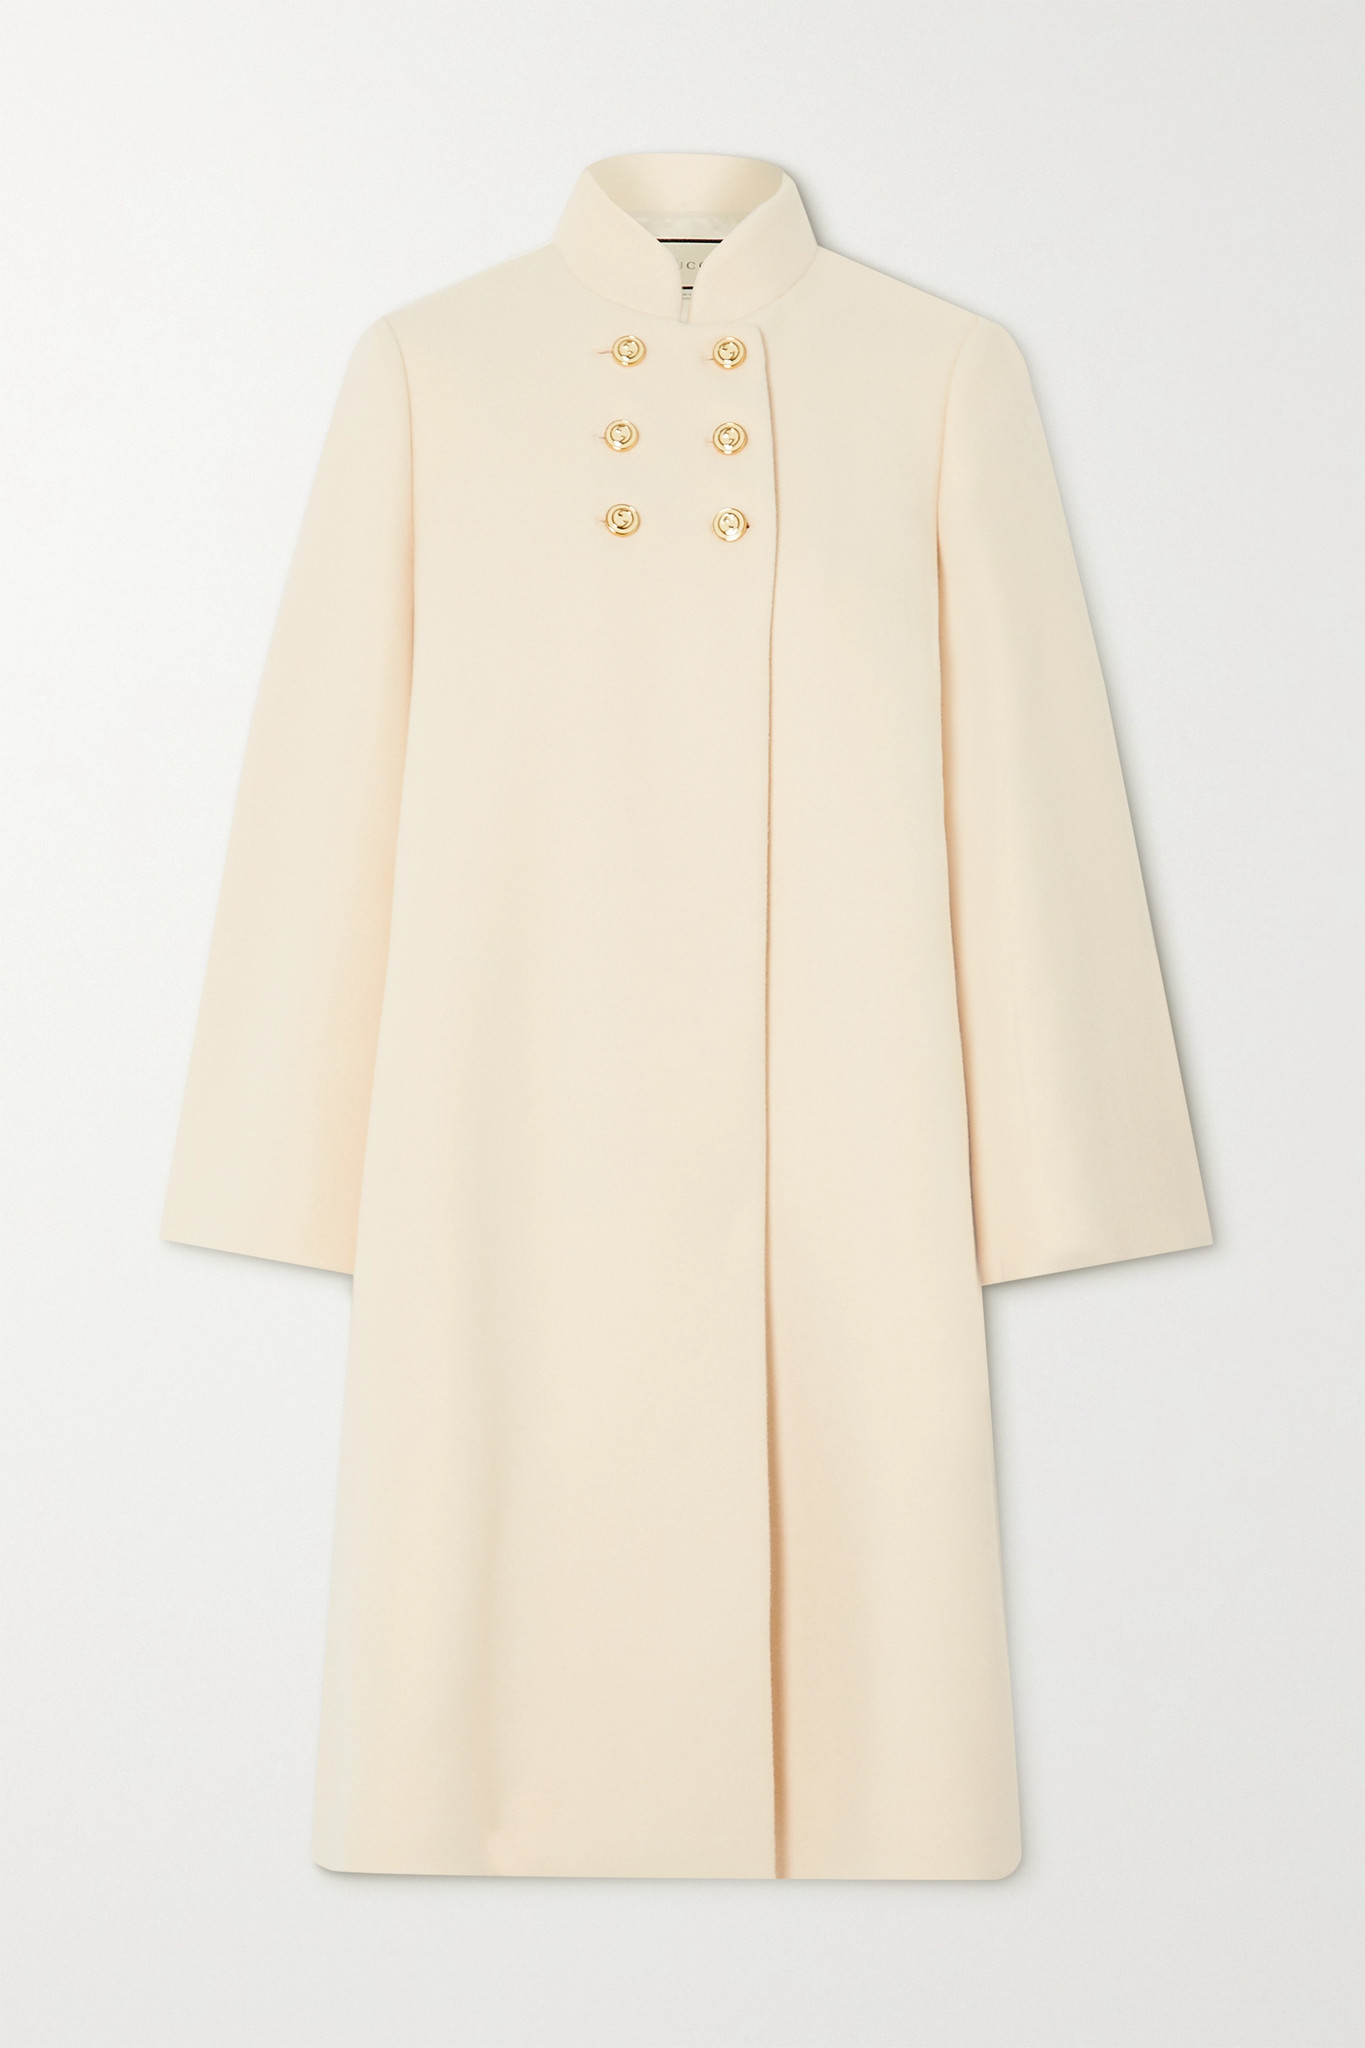 GUCCI - Button-embellished Double-breasted Wool-blend Felt Coat - White - IT40